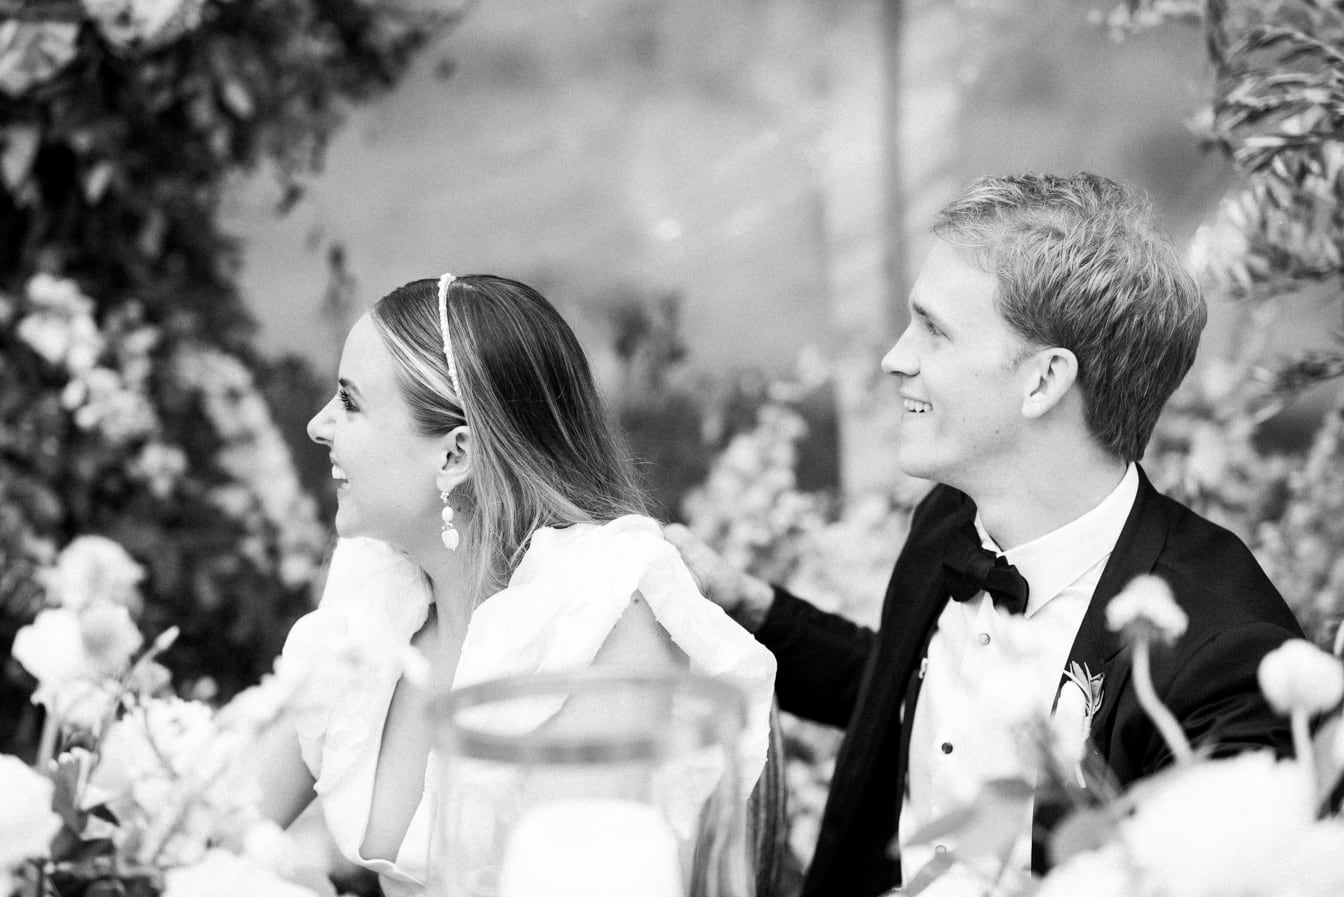 Black and white image of bride and groom smiling during wedding reception